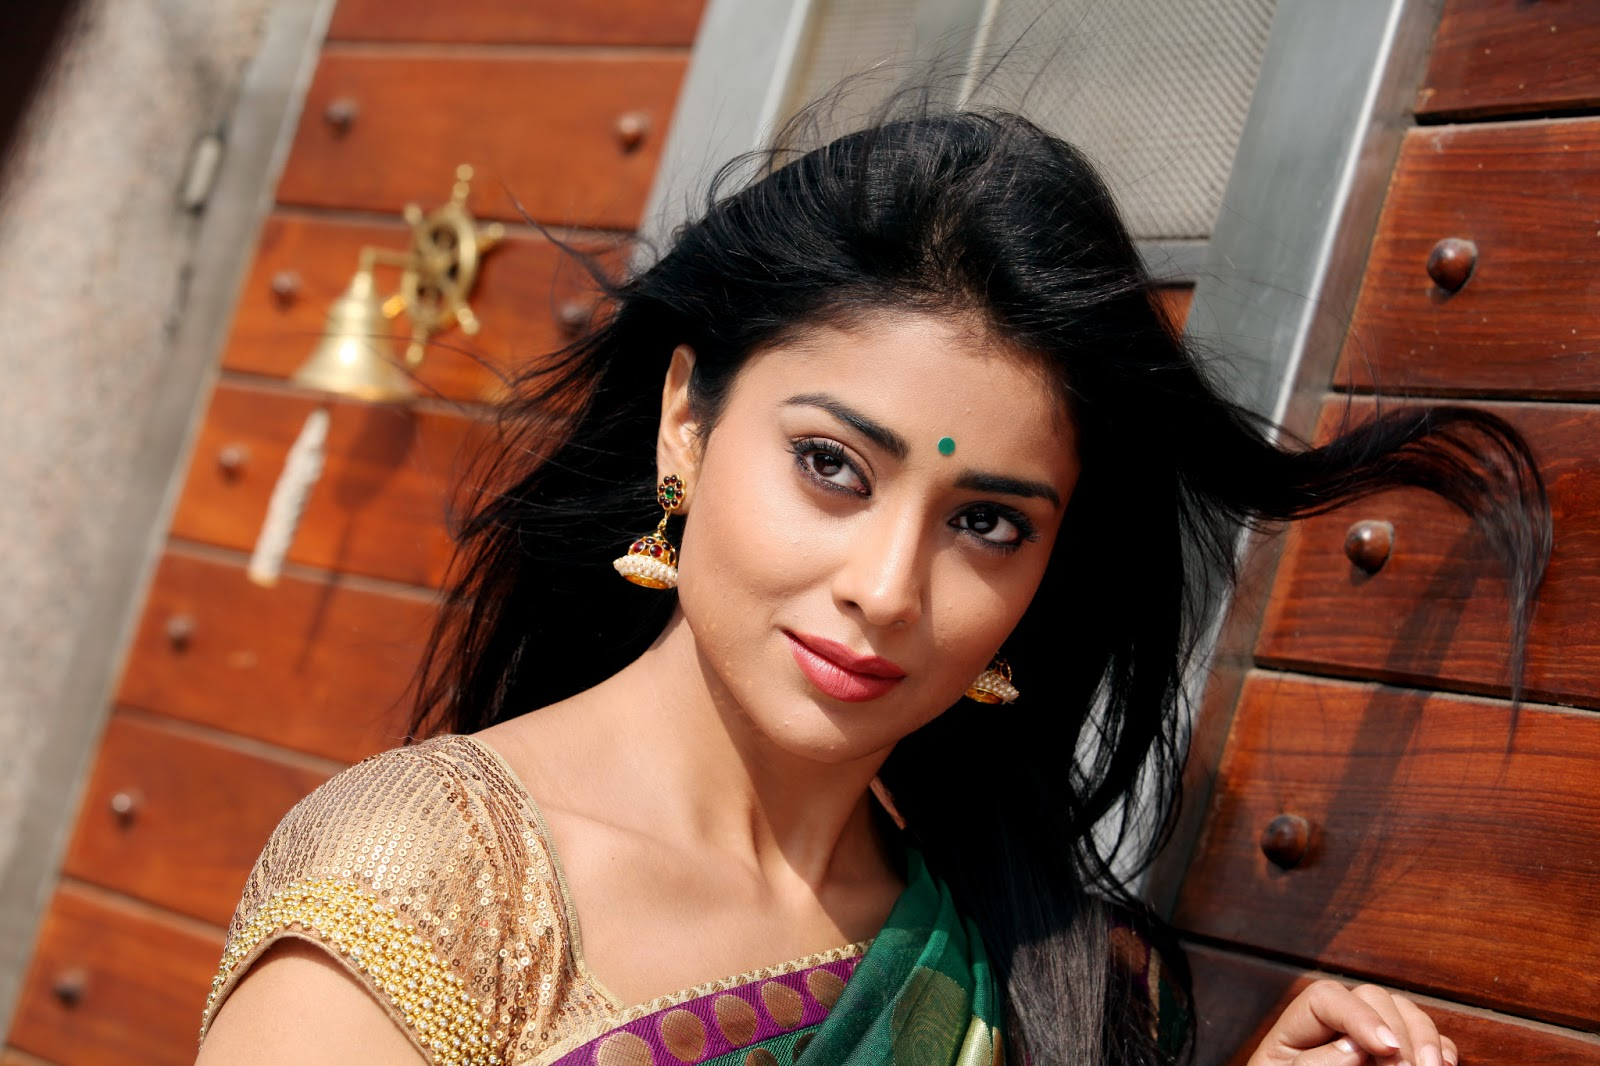 latest shriya saran pic free download for desktop